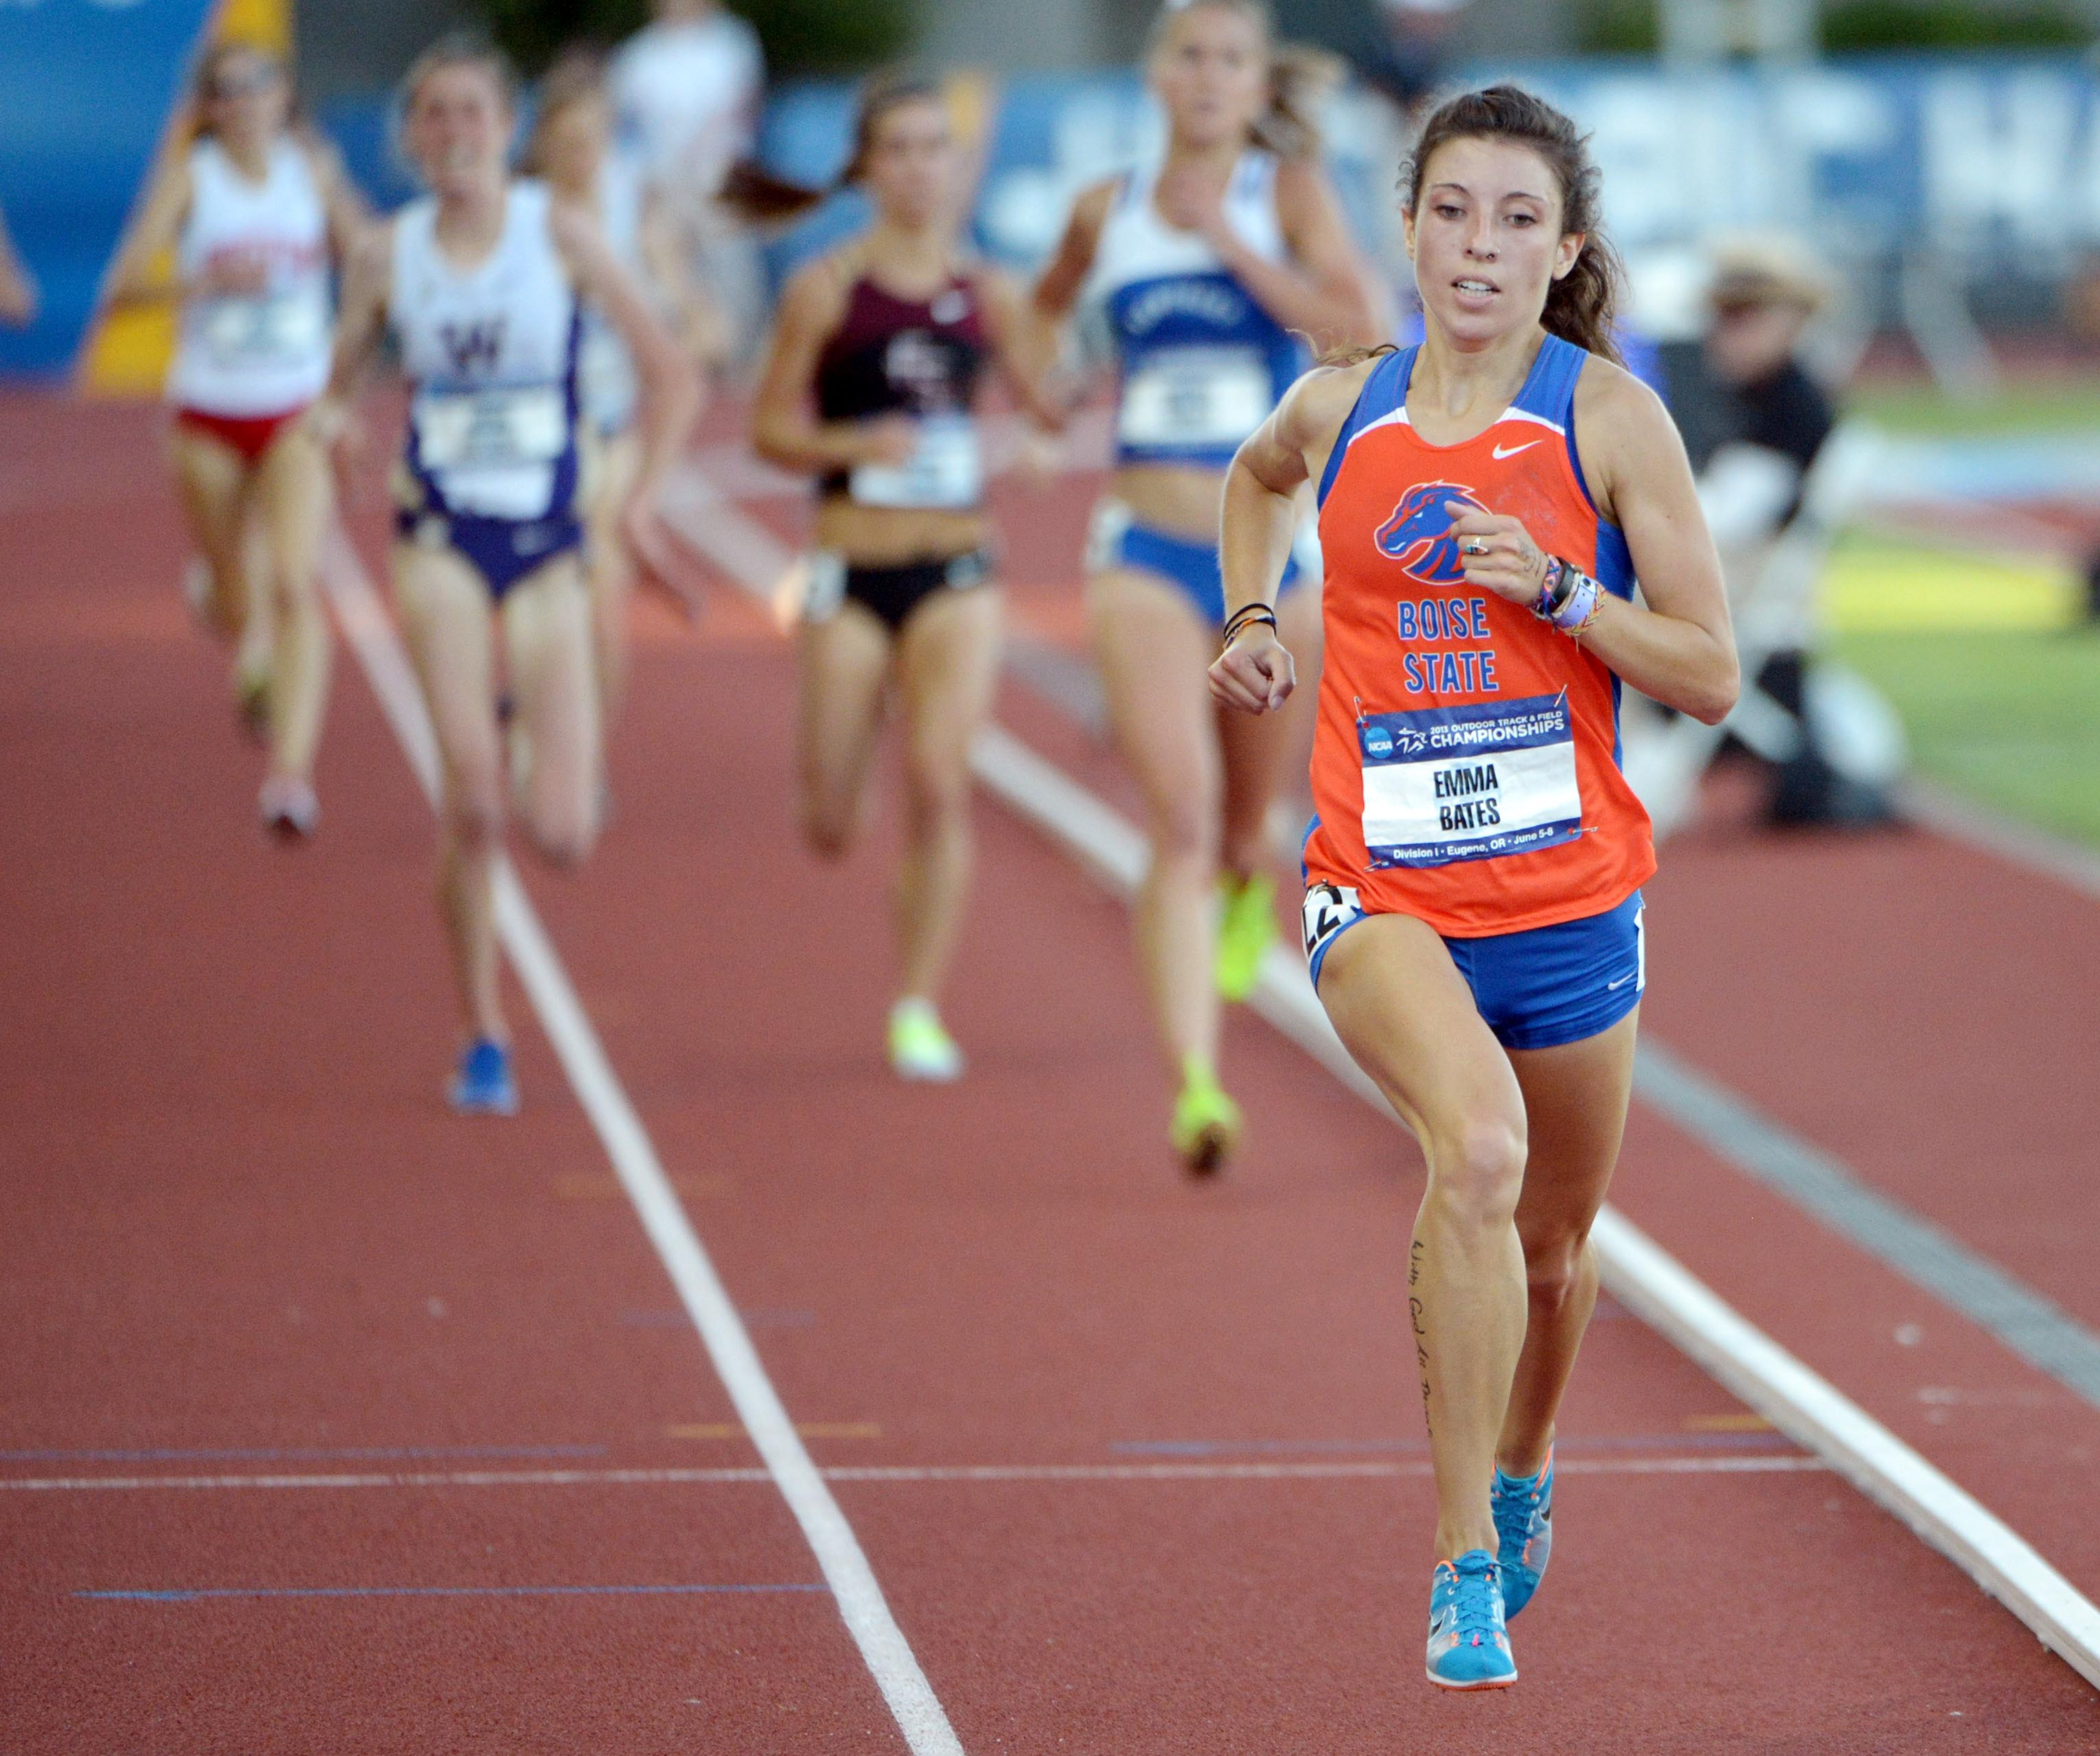 Jun 5, 2013; Eugene, OR, USA; Emma Bates of Boise State places third in the womens 10,000m in 33:37.13 in the 2013 NCAA Championships at Hayward Field. Mandatory Credit: Kirby Lee-USA TODAY Sports